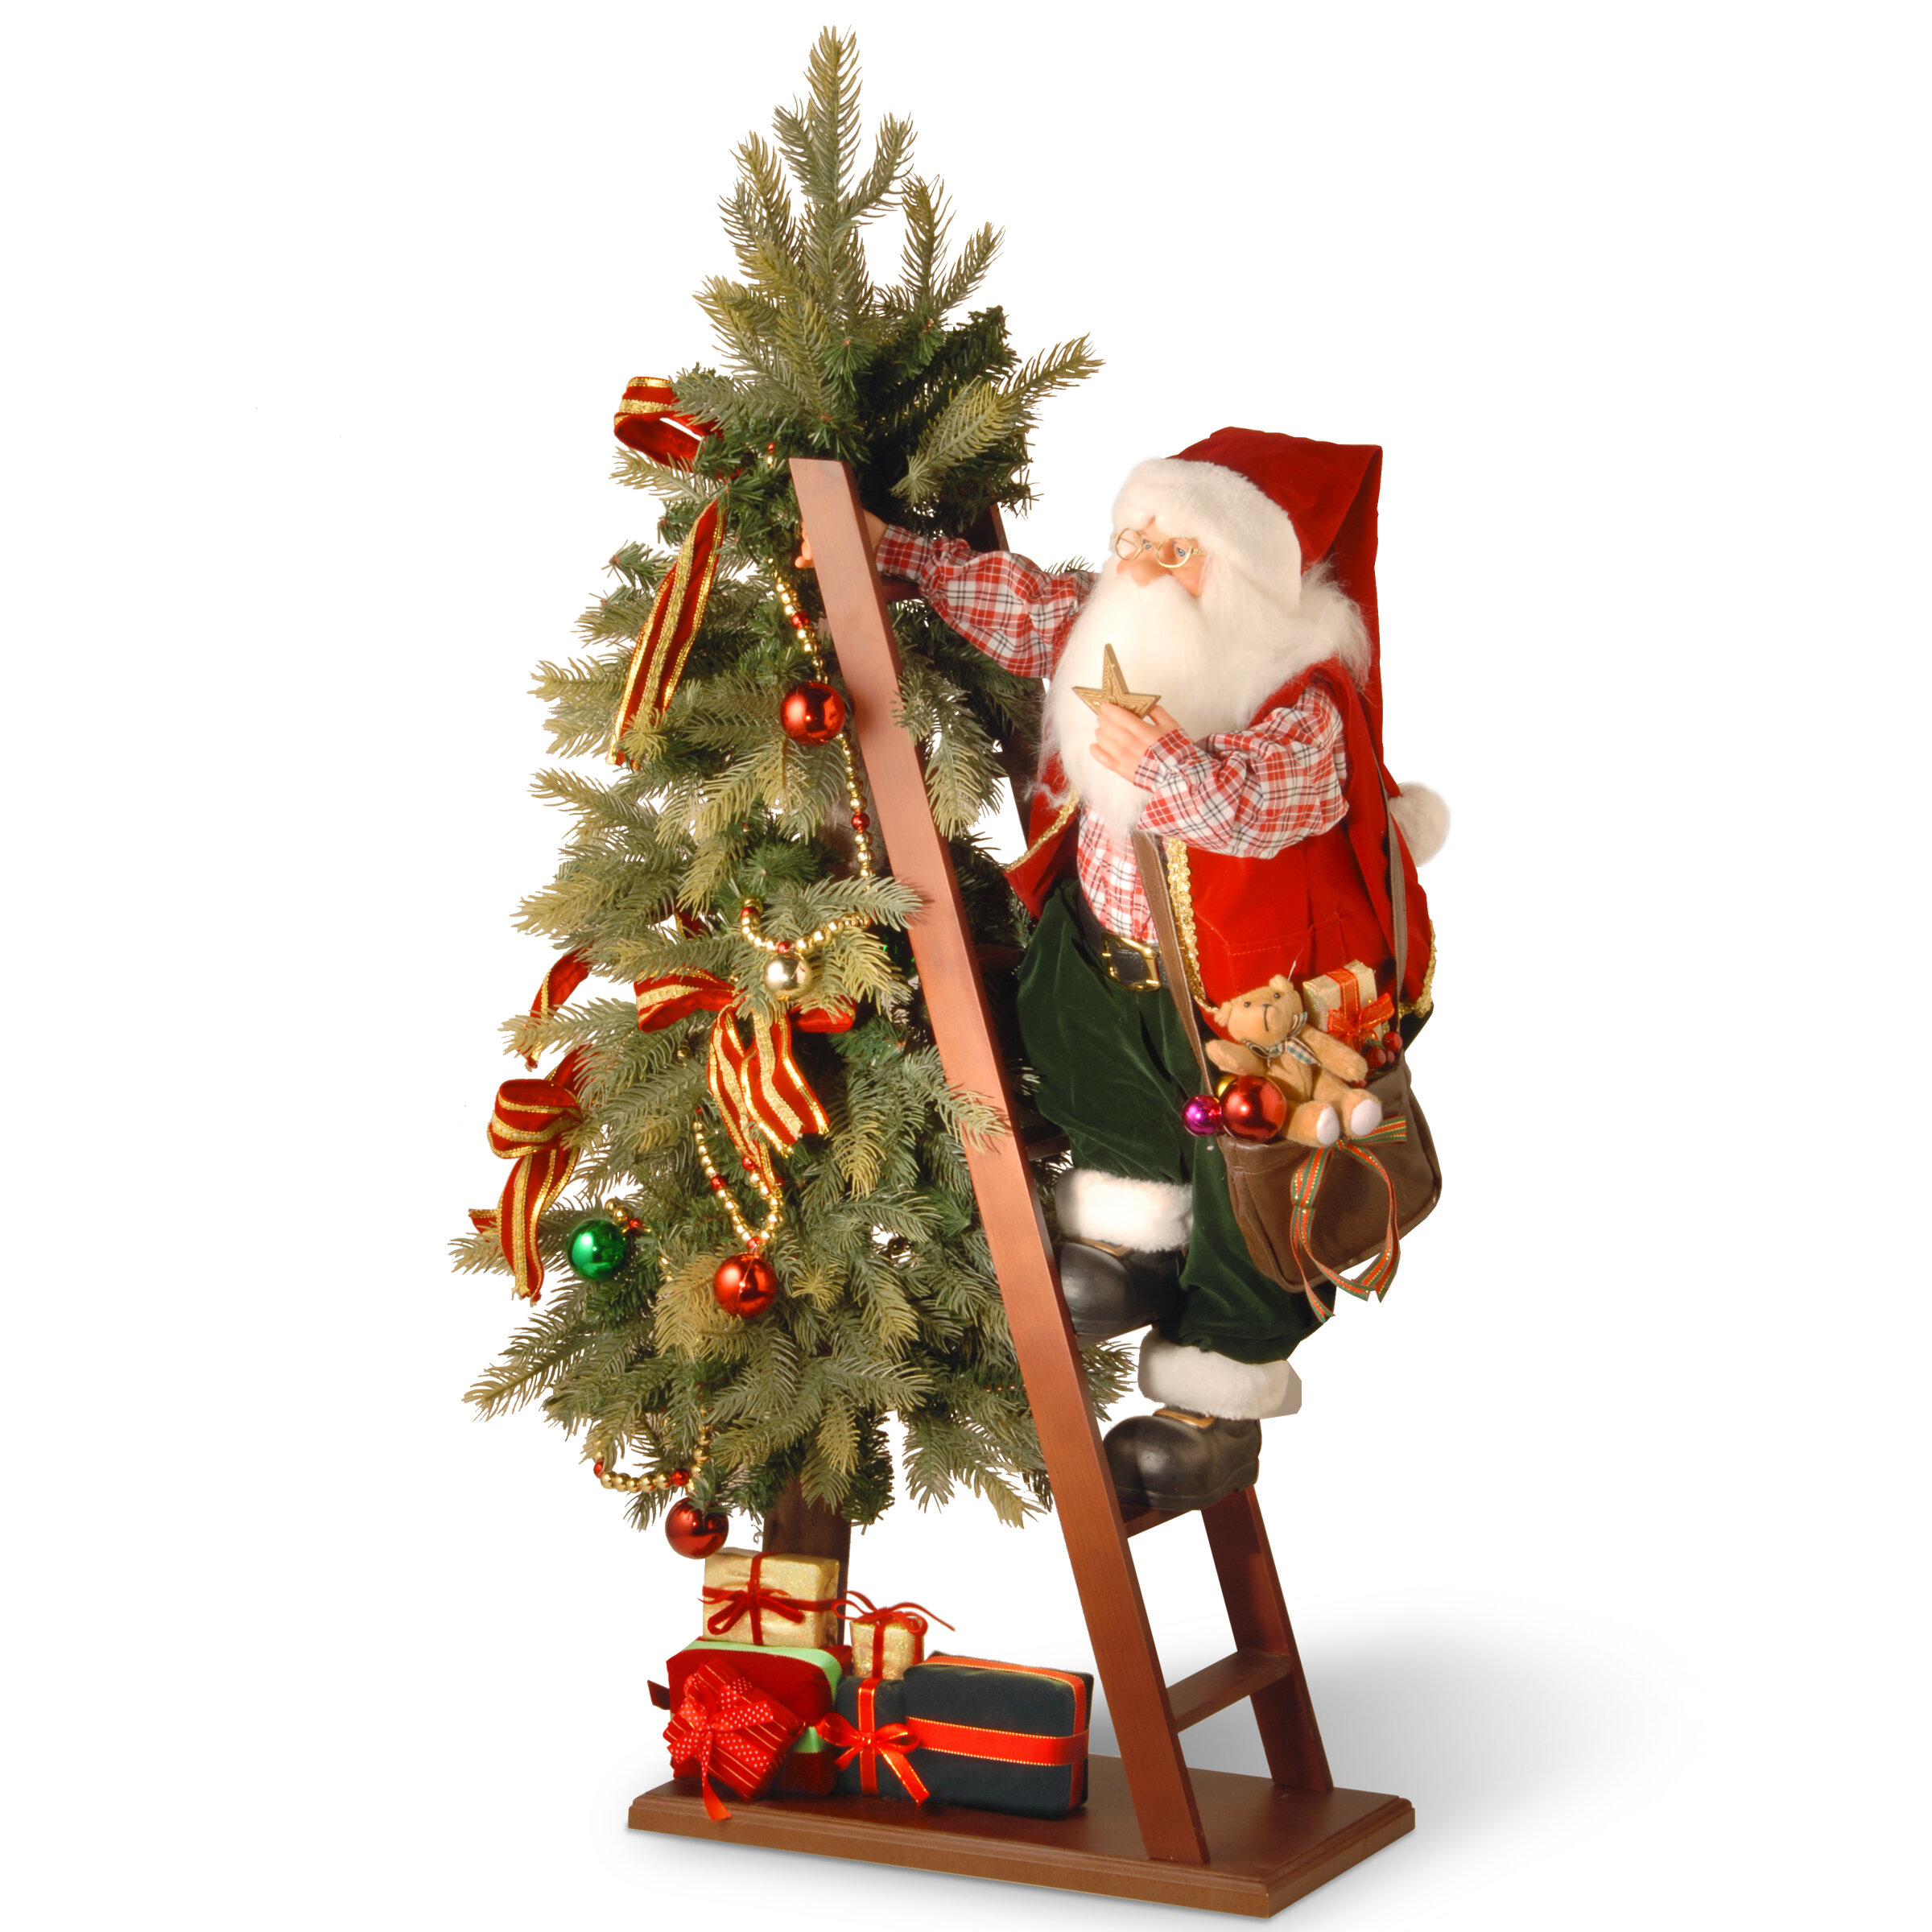 possibledreams santas dreams sports decorative pdsportsandleisure santa birdie leisure possible and decor htm golf